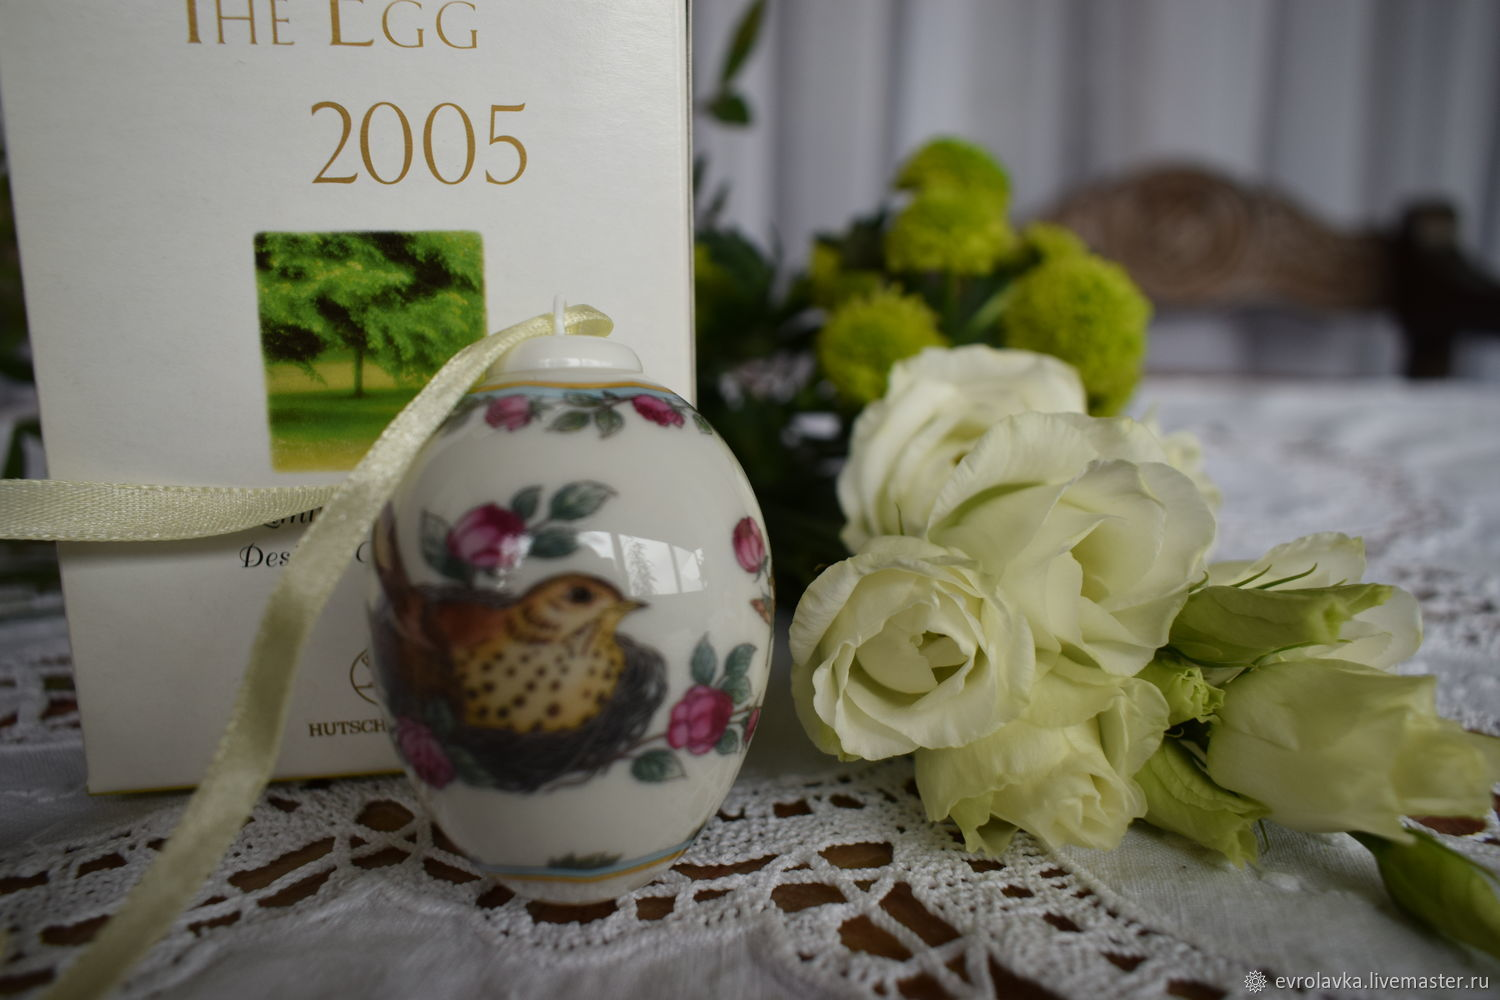 Porcelain easter egg from hutschenreuthergermany shop online on imperia evrolavka easter gifts handmade porcelain easter egg from hutschenreuthergermany imperia evrolavka negle Image collections